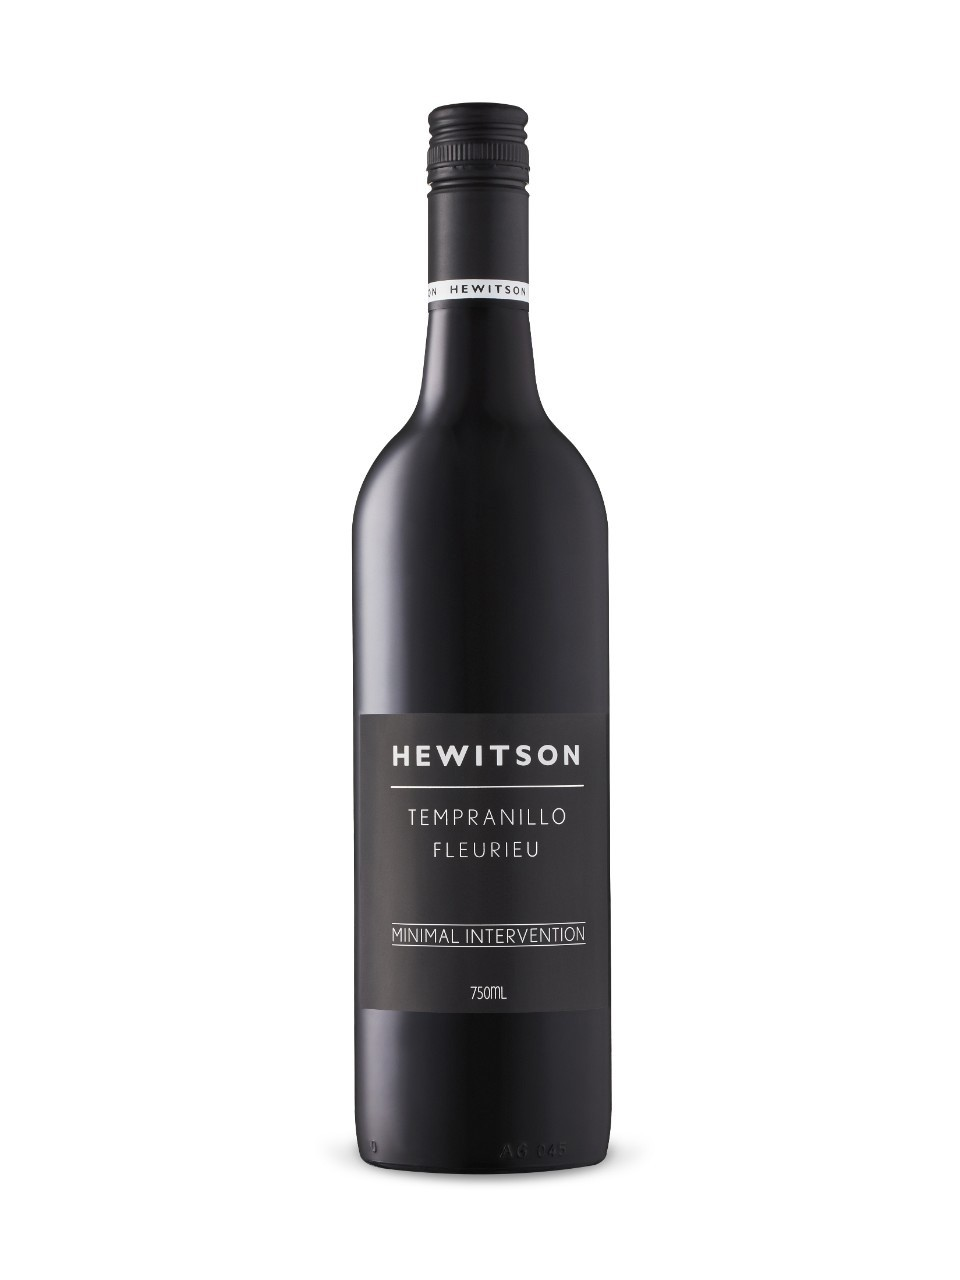 Tempranillo Fleurieu Minimal Intervention Hewitson 2015